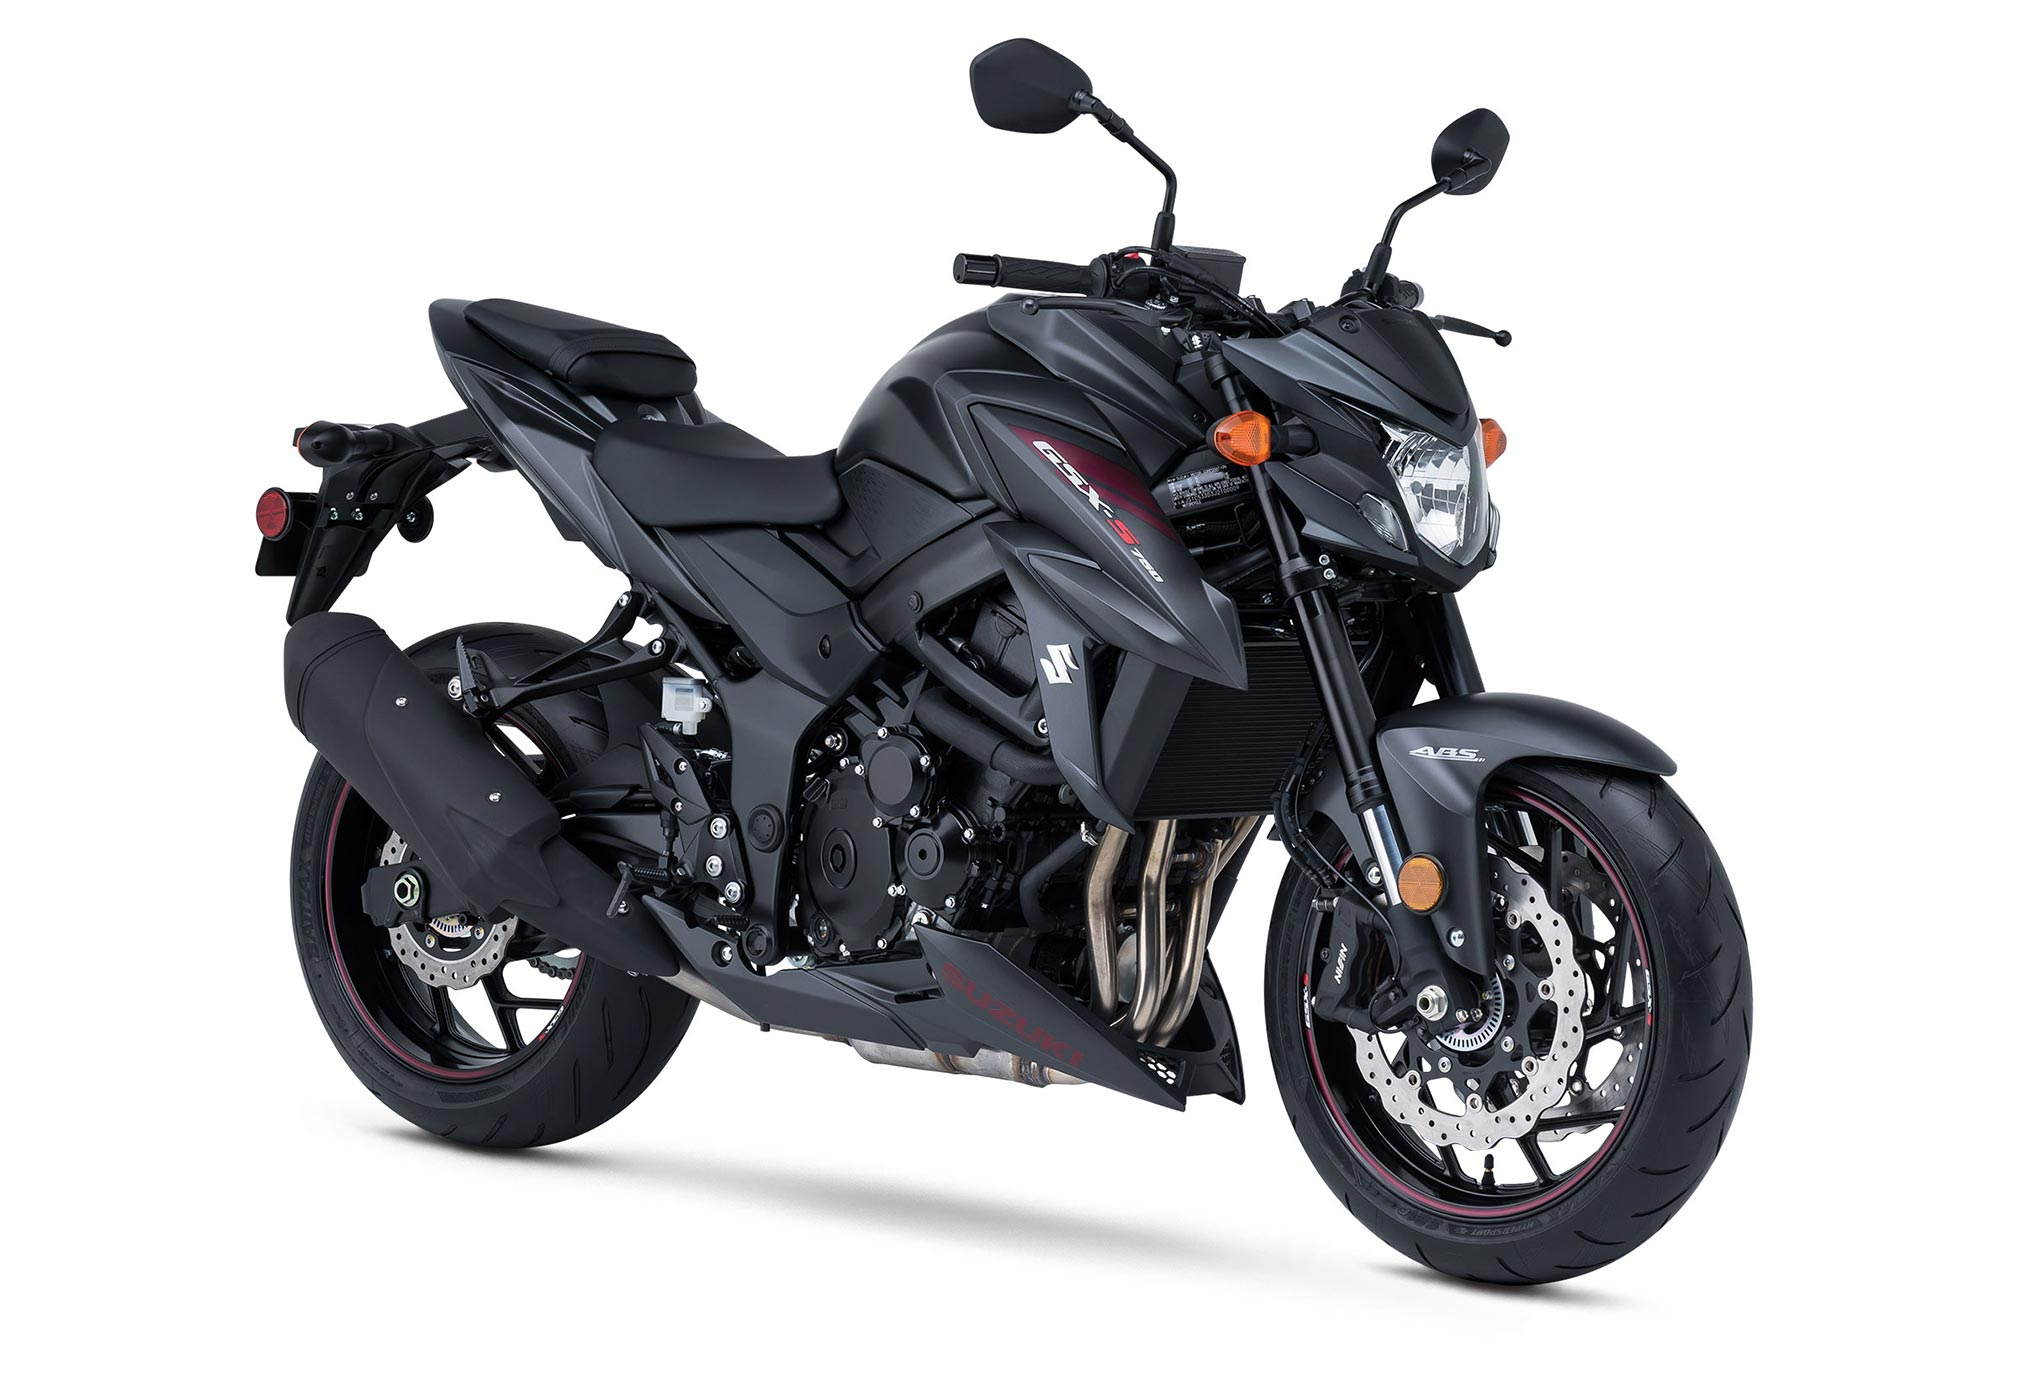 2018 suzuki gsx s750z abs review totalmotorcycle. Black Bedroom Furniture Sets. Home Design Ideas